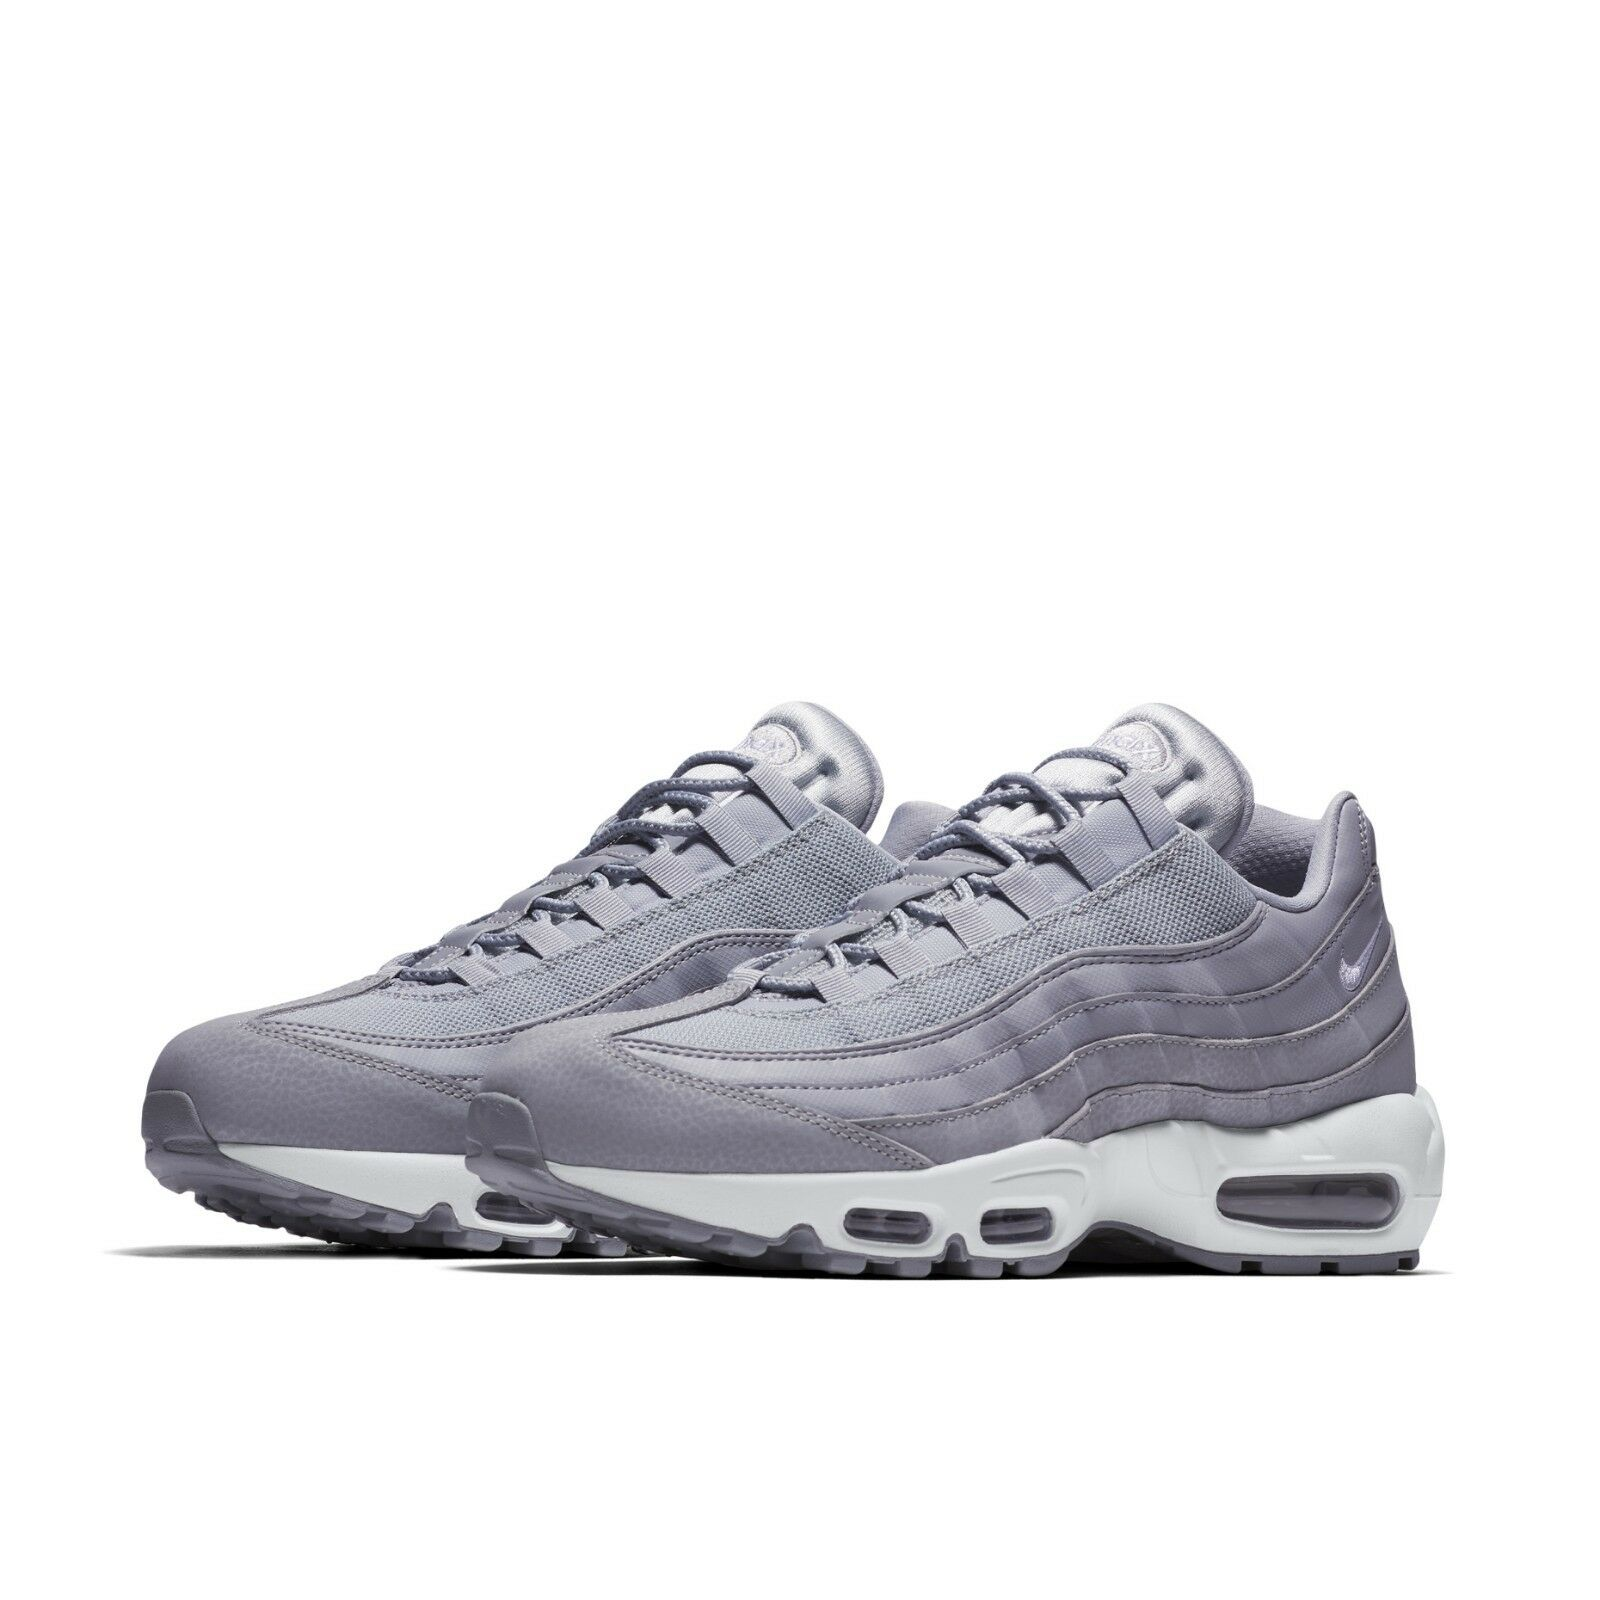 best loved 1a60f 09e95 Nike Mens Air Max 95 Essential Wolf Grey White Running Shoes Sneakers  749766-037